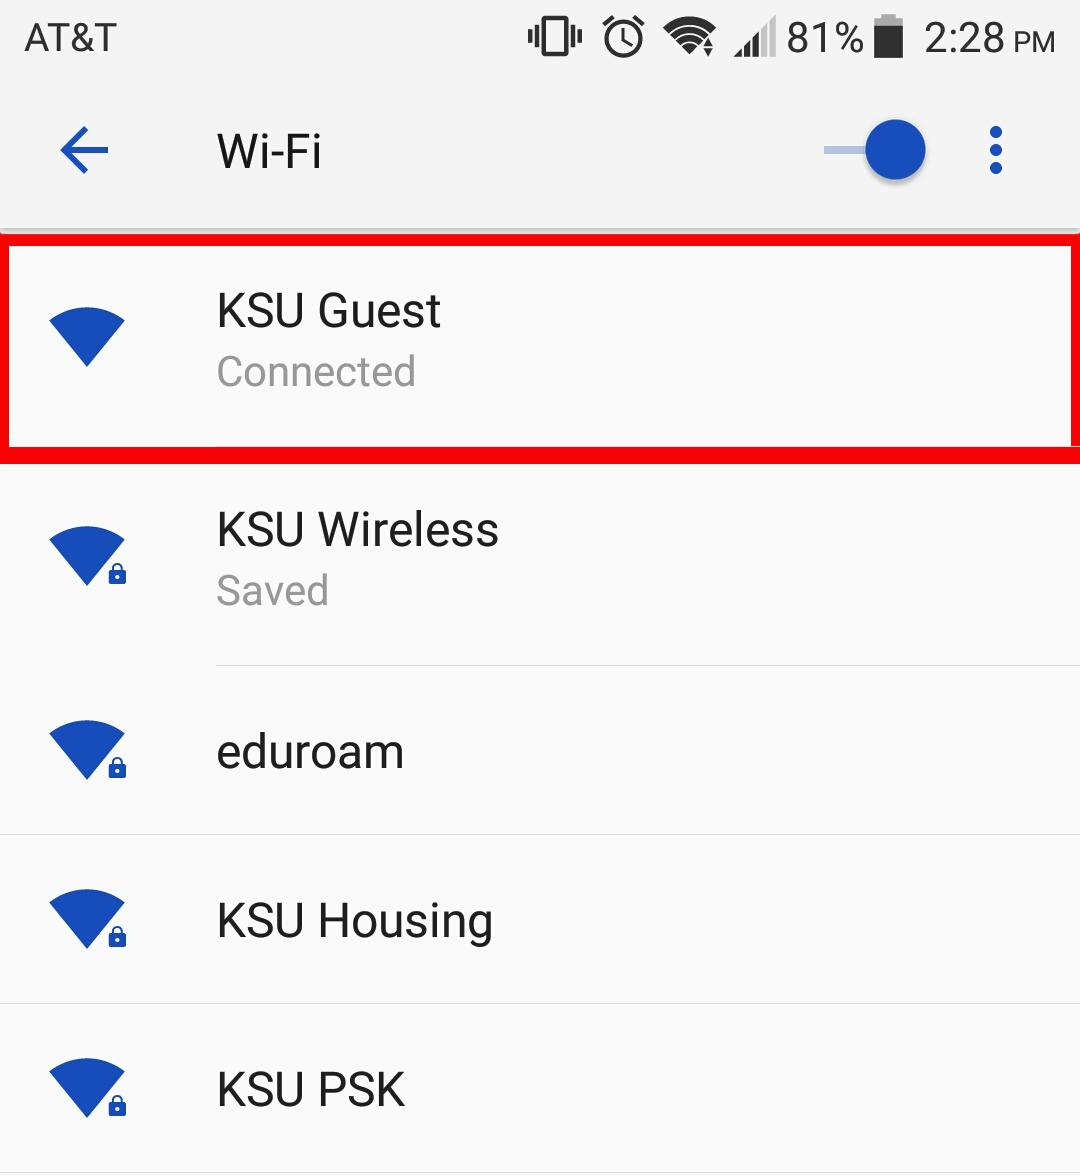 Knowledge - Forget a wireless network connection